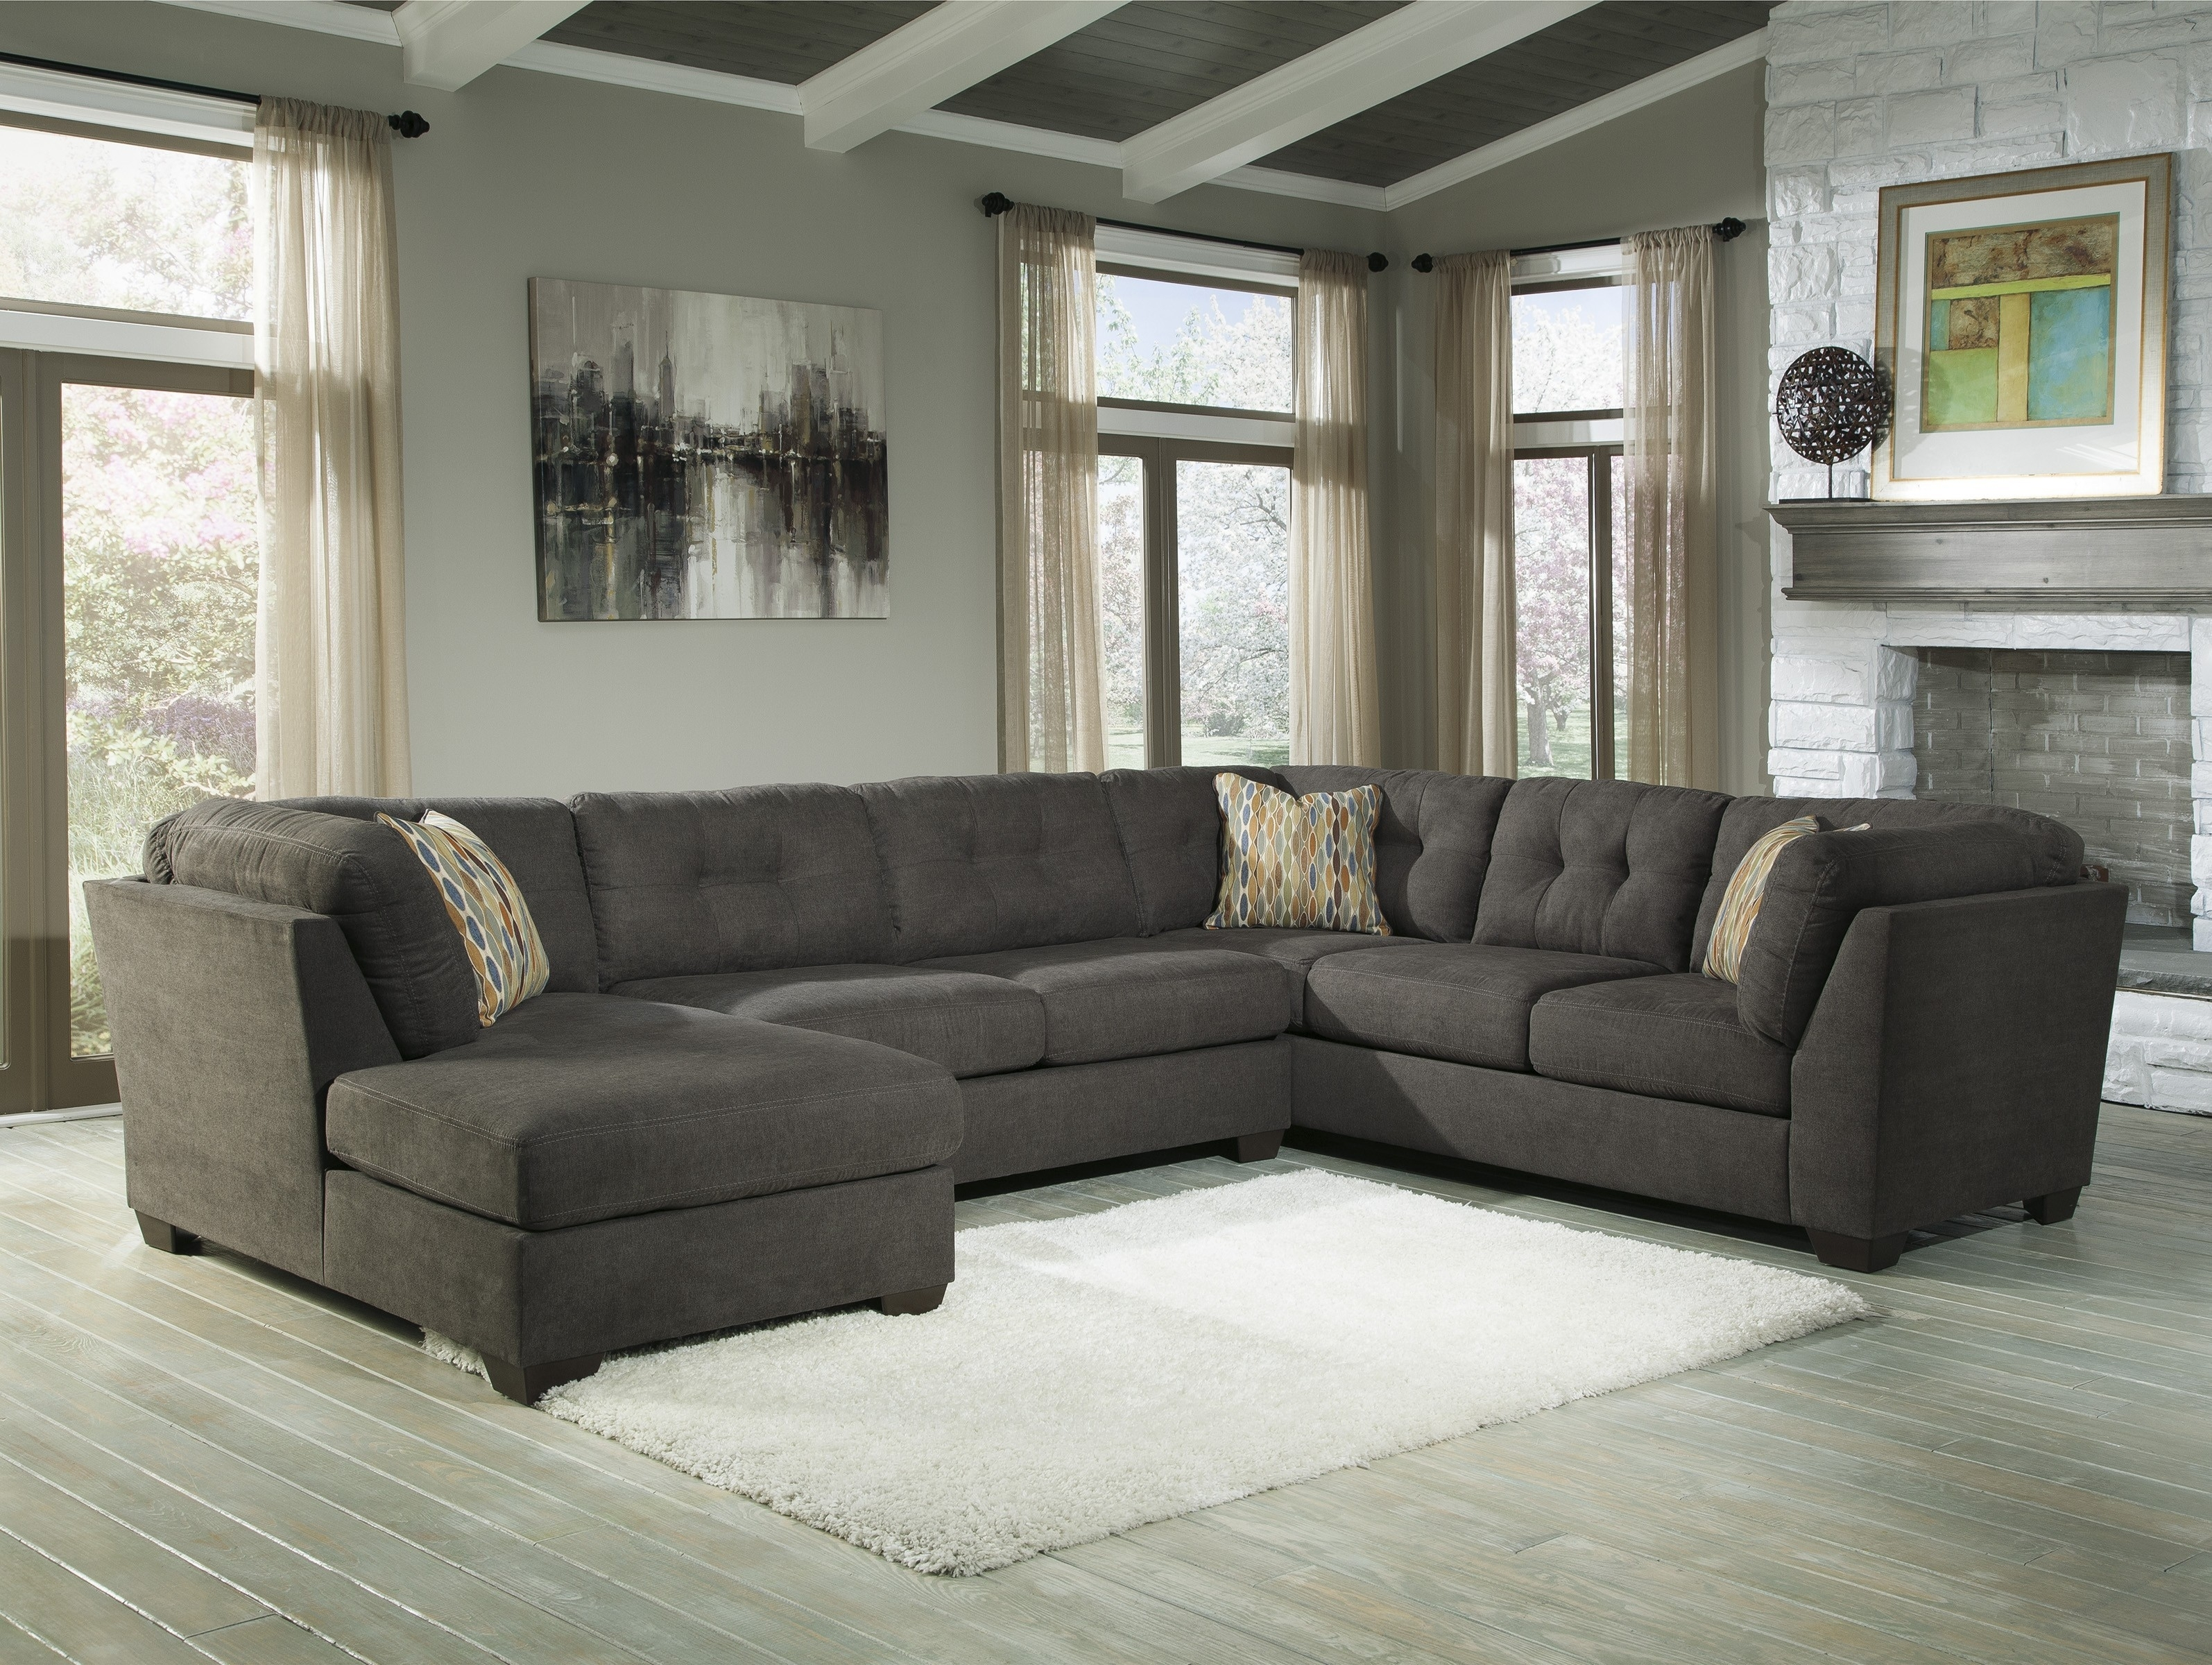 3 Piece Sectional Sofa Dimensions | Baci Living Room Within Malbry Point 3 Piece Sectionals With Raf Chaise (View 19 of 30)